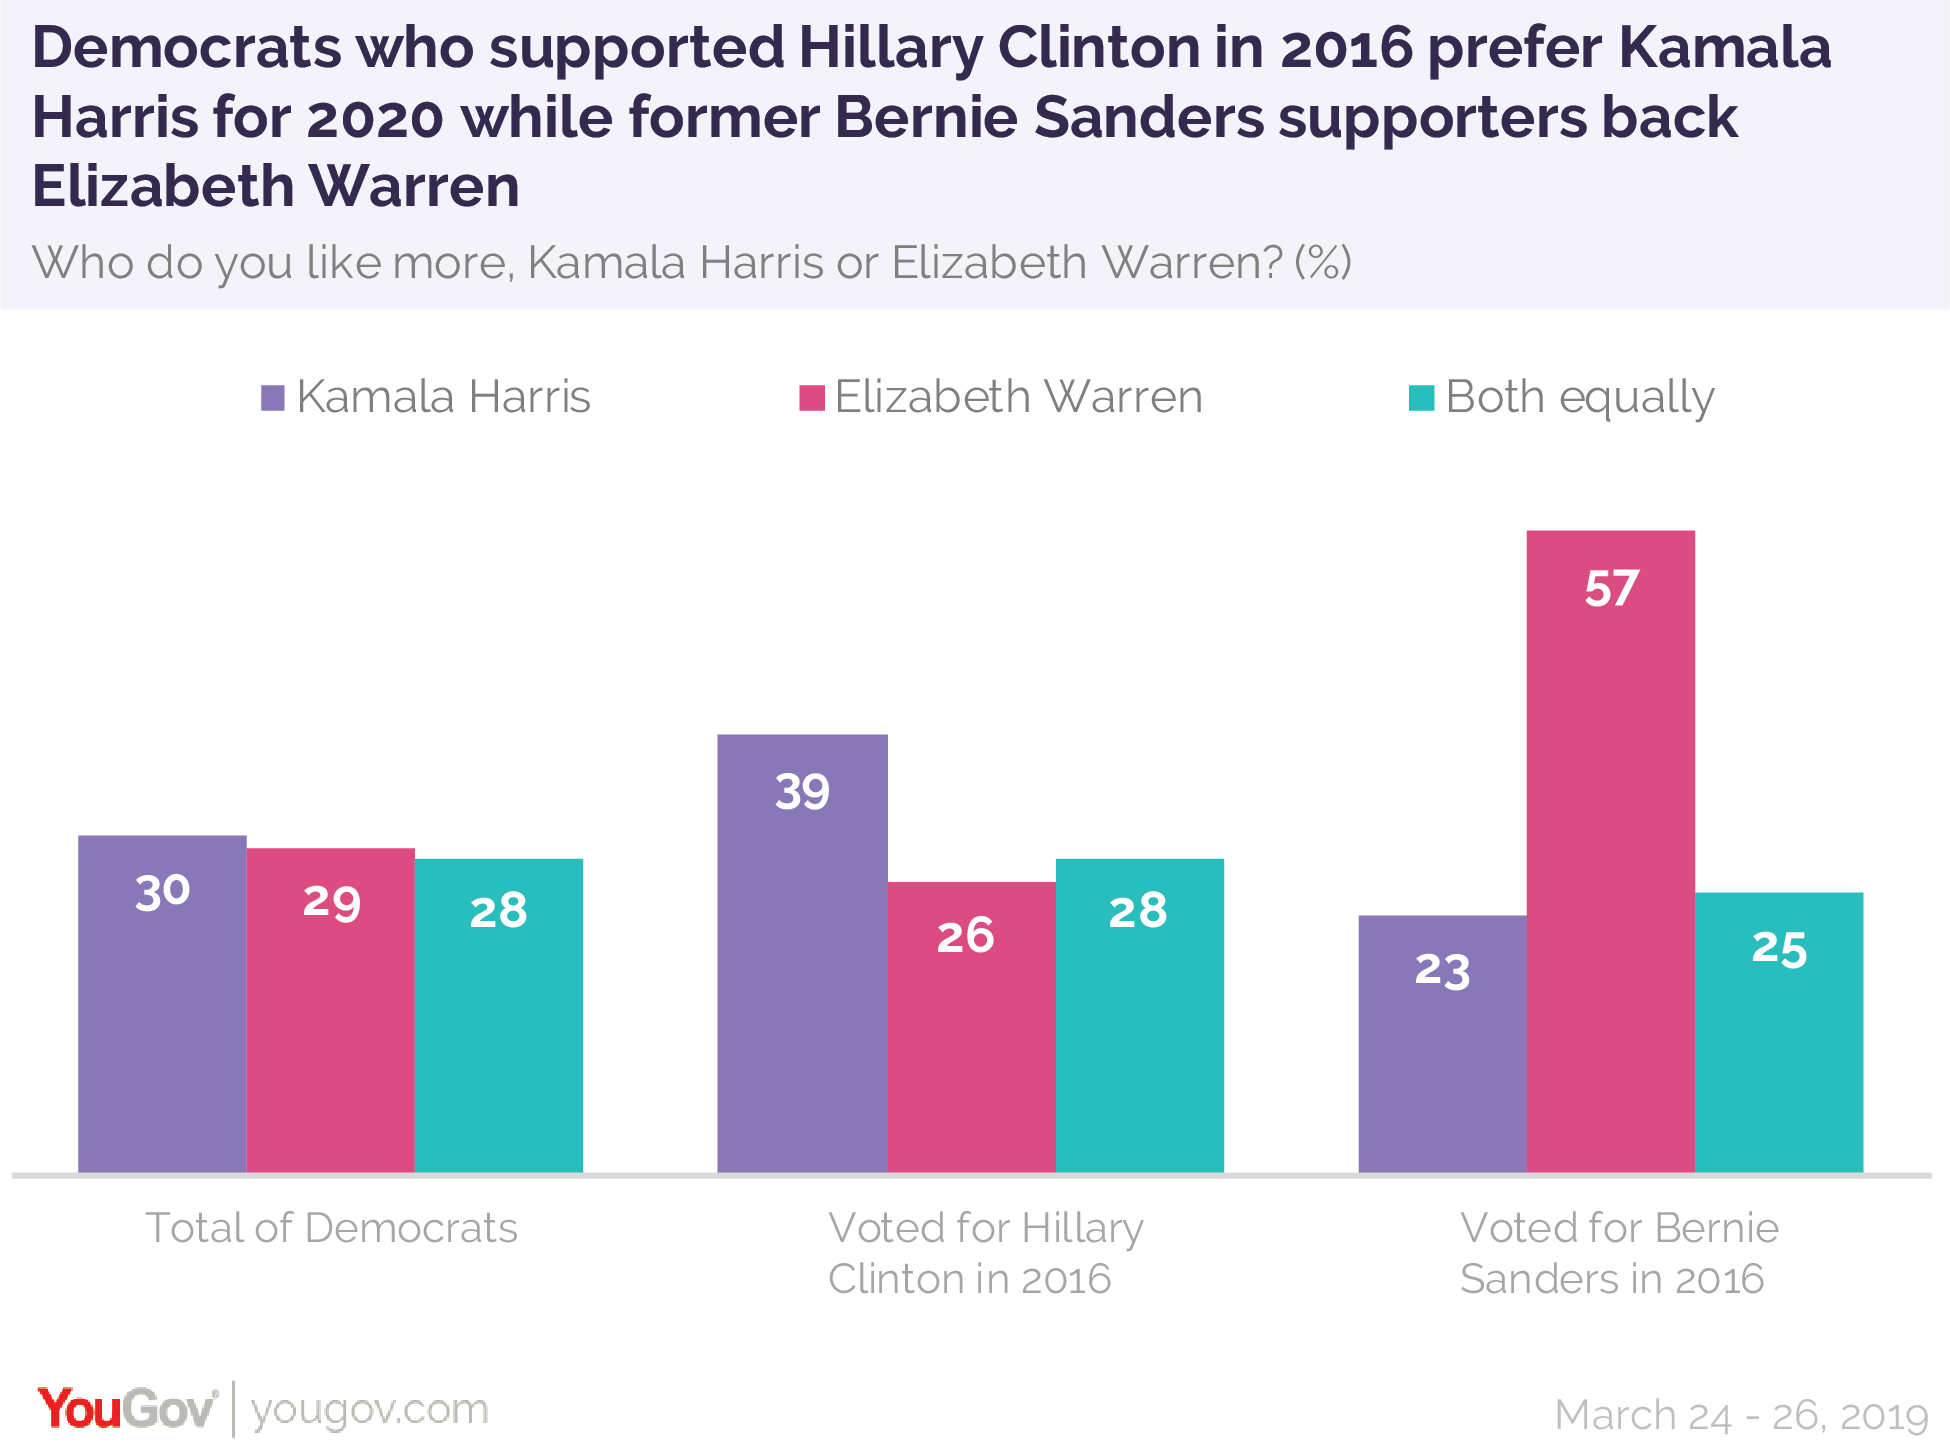 Democrats who supported Hillary Clinton in 2016 prefer Kamala Harris for 2020 while former Bernie Sanders supporters back Elizabeth Warren